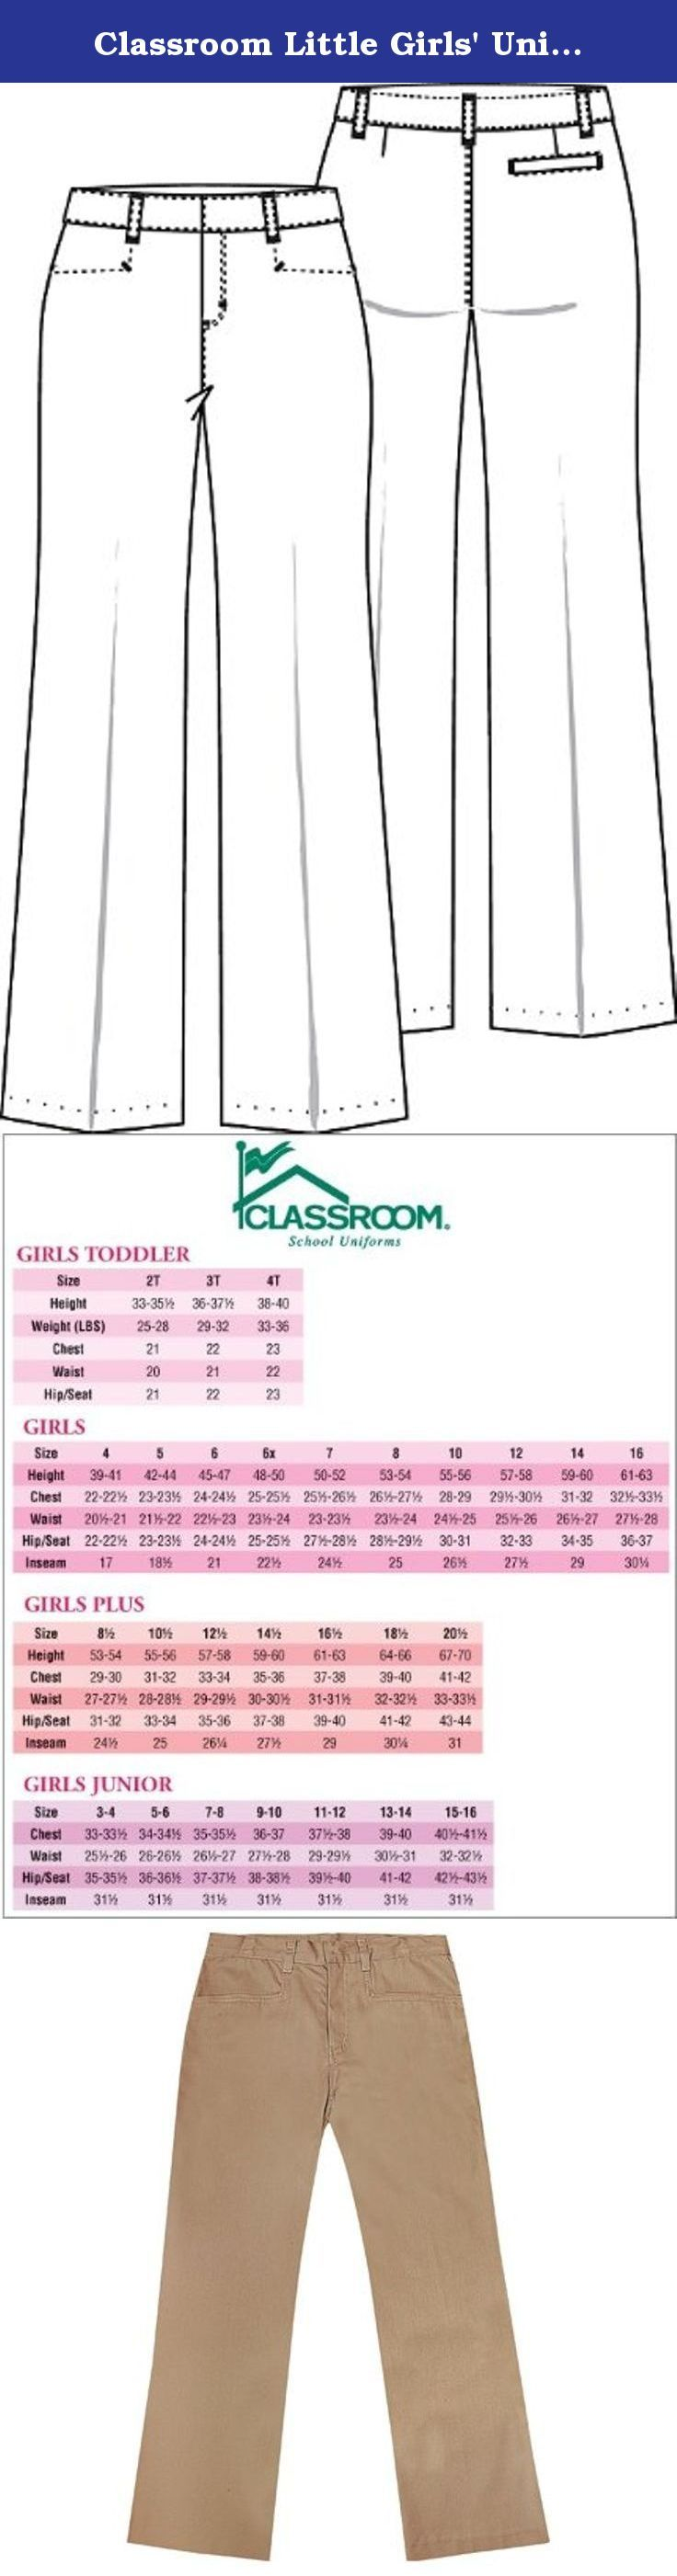 Classroom Little Girls' Uniform Low Rise Flare Leg Pant,Khaki,6. Trim and stylish pant with lower rise sits on the hip with a center back elastic waist. Boot leg, short fly, top-pockets, and belt loops complete this contemporary look. Easy care soil-release poly/cotton twill. Imported. For sizes 7-16 see style 51072, for Girls plus sizes 8 1/2-20 1/2 see style 51073 and for Juniors sizes 1/2-21/22 see style 51074, for Juniors Tall 1/2-15/16 see style 51074T.